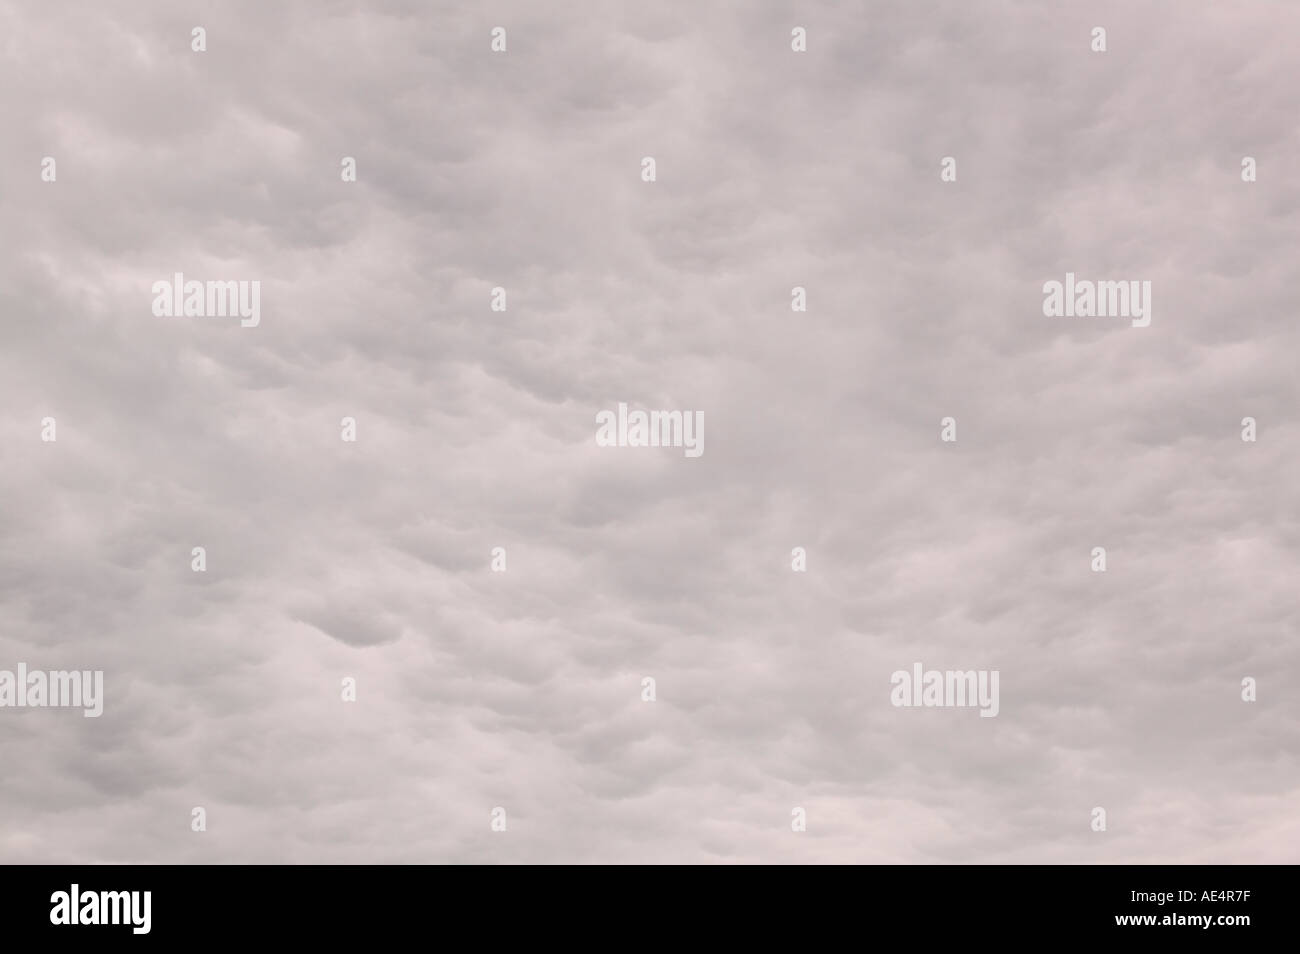 cloud on an occluded front - Stock Image